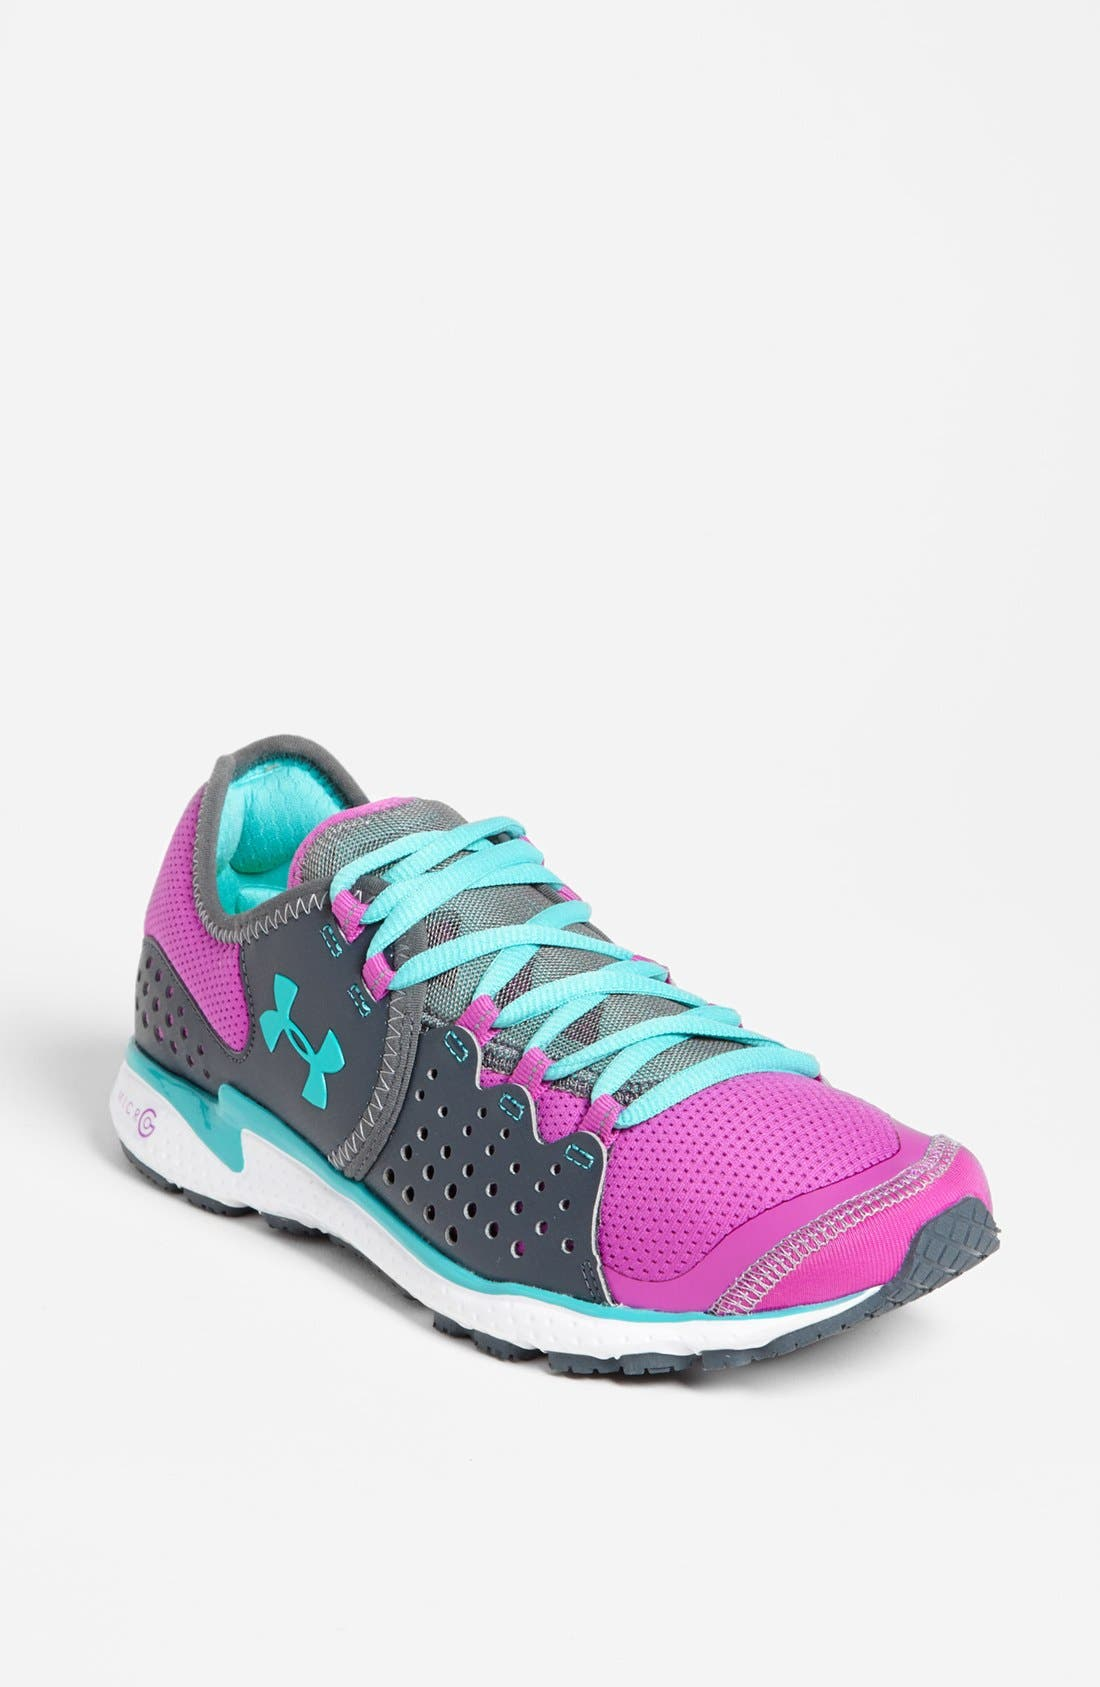 Main Image - Under Armour 'Micro G® Mantis' Running Shoe (Women)